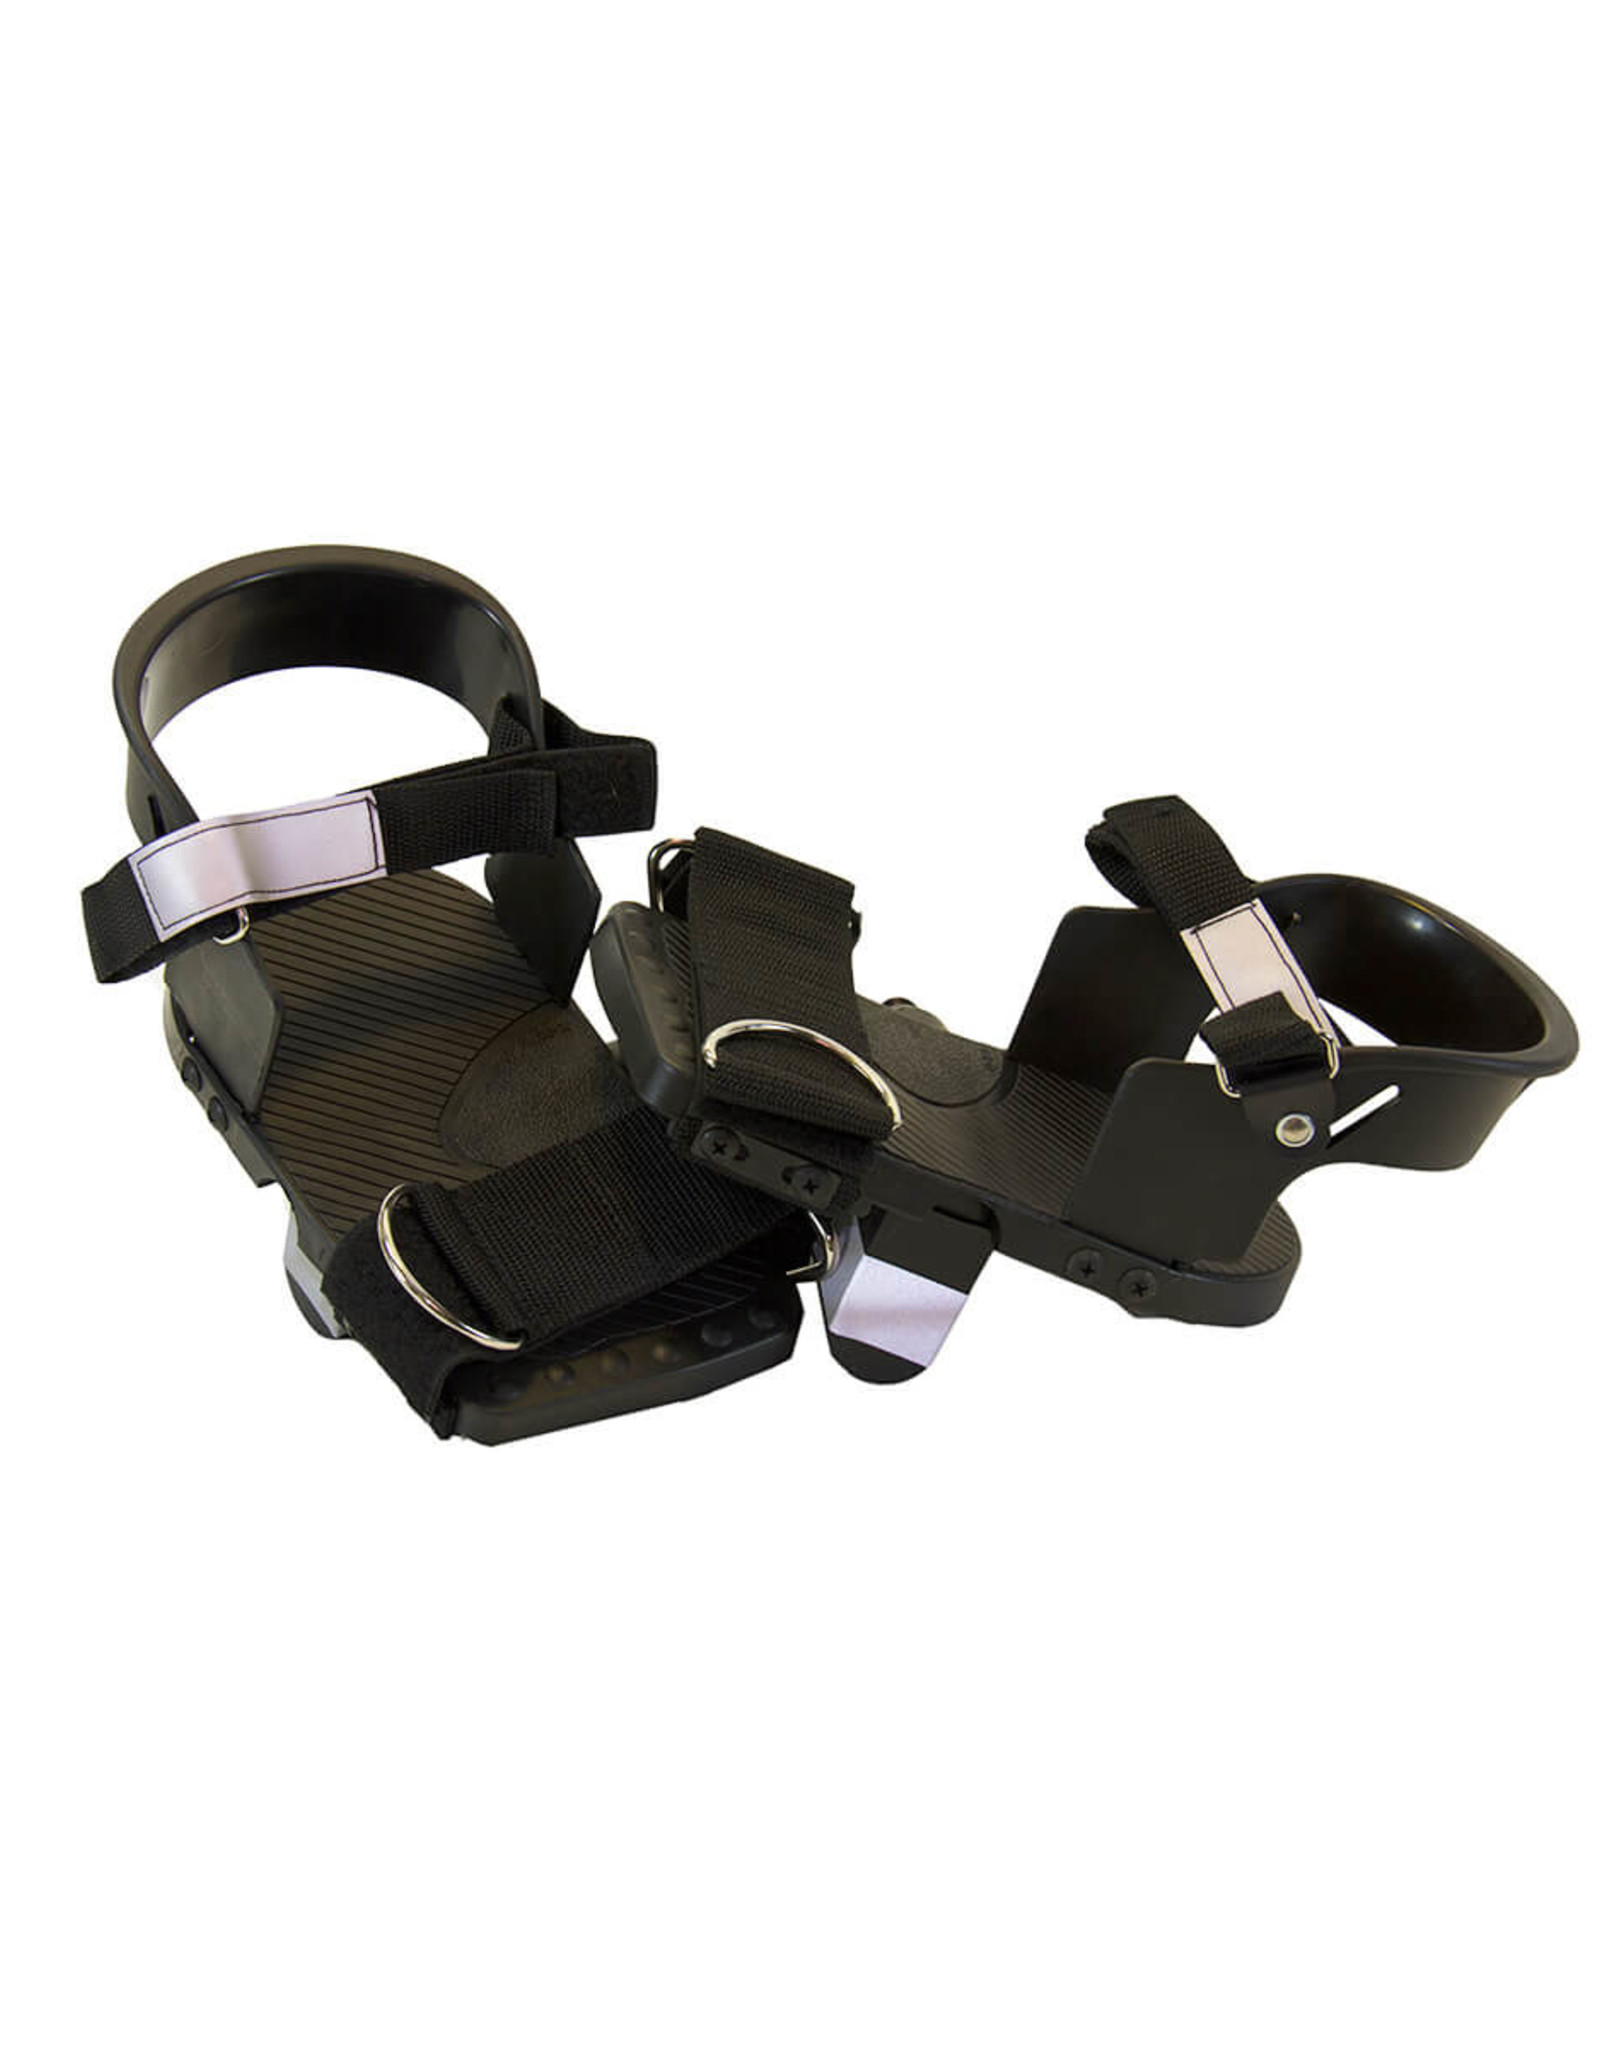 Full Pedal with Heel Support